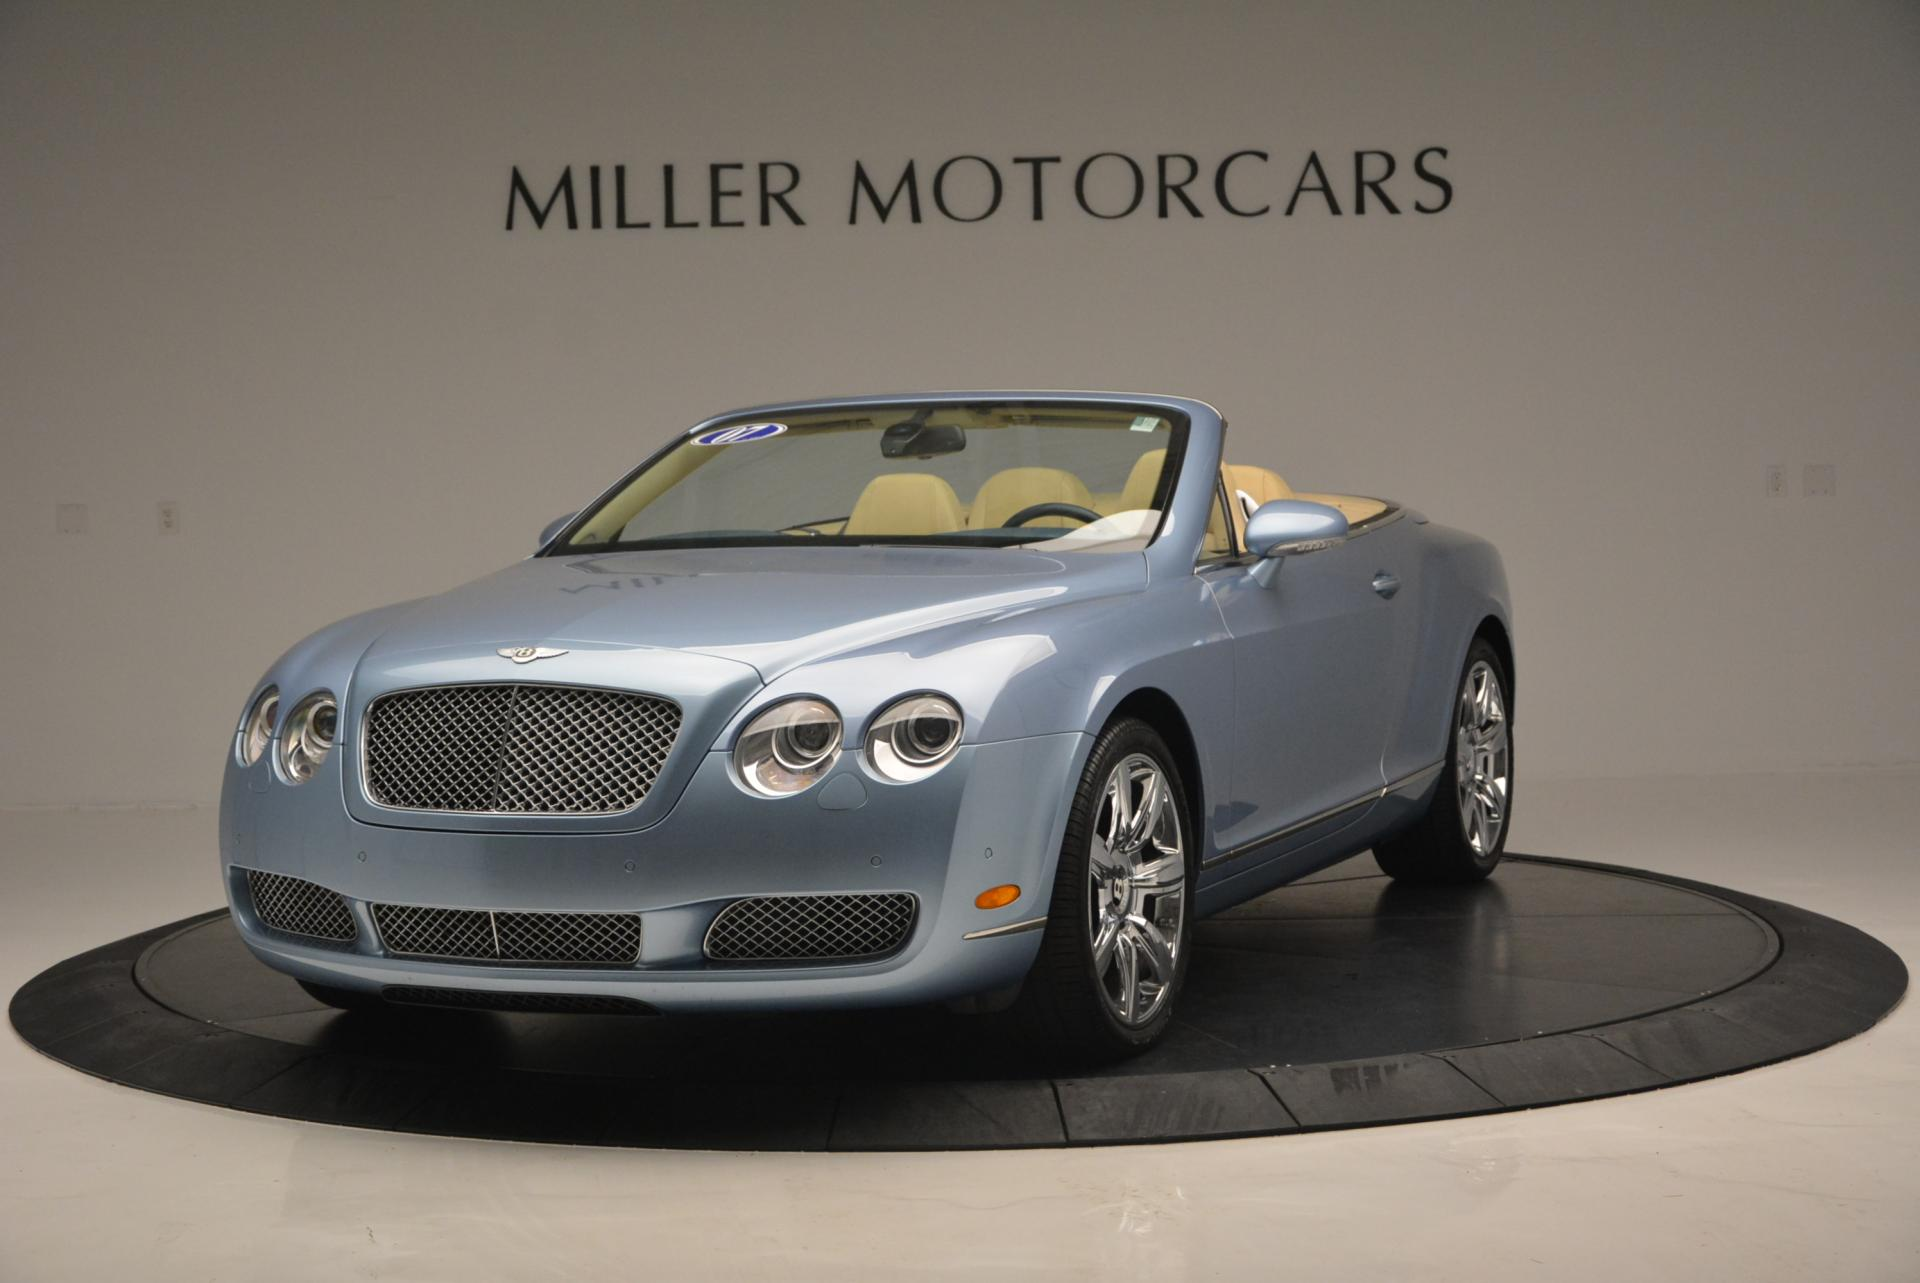 Used 2007 Bentley Continental GTC for sale Sold at McLaren Greenwich in Greenwich CT 06830 1